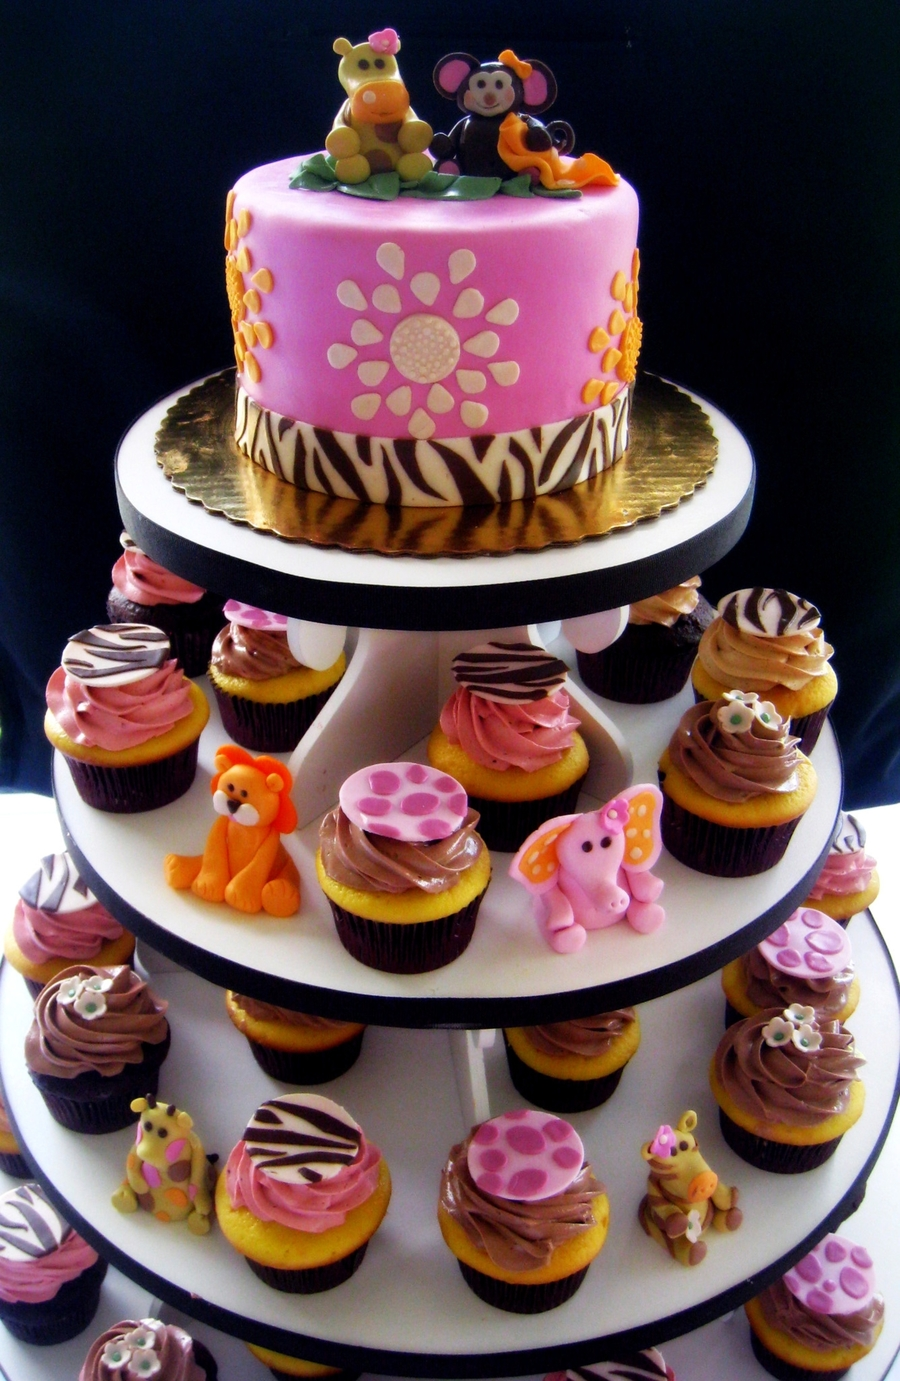 900_819451bIez_safari-cake-amp-cupcakes Pink Safari Baby Shower Cake